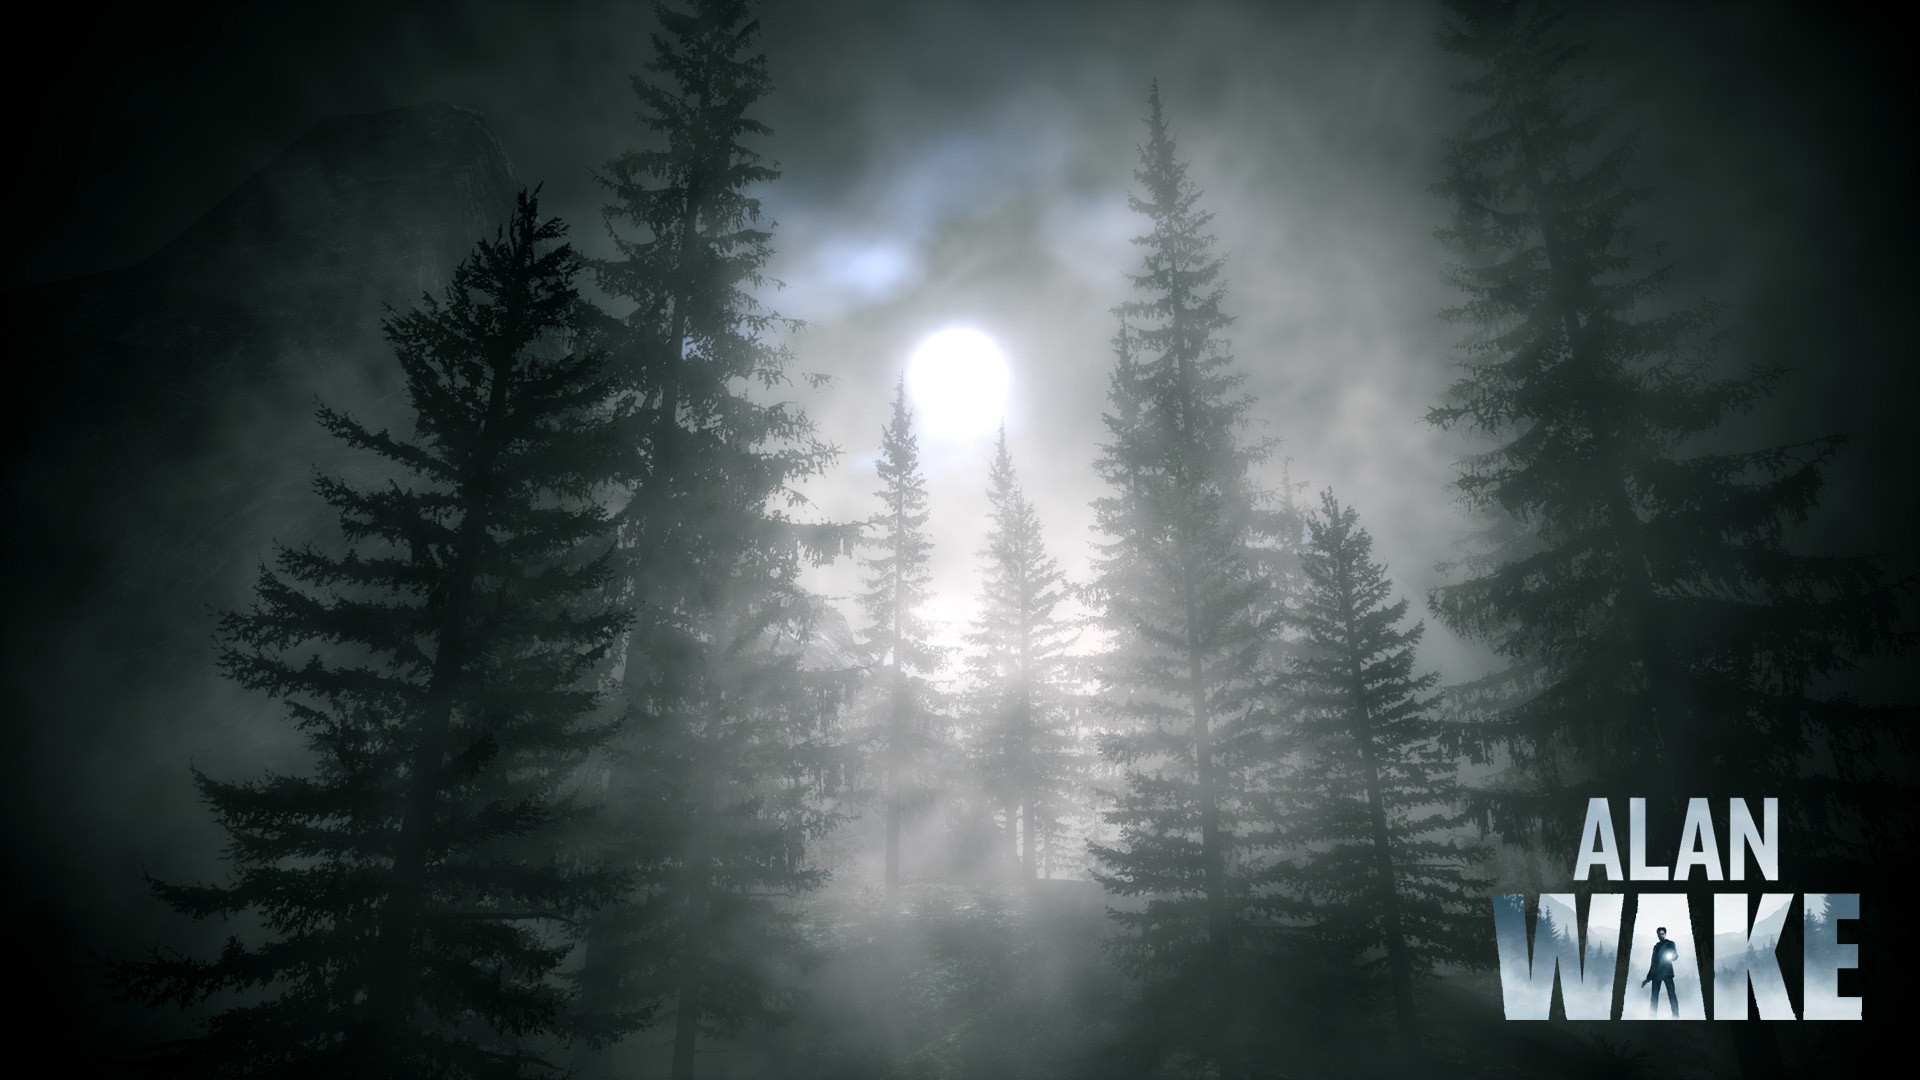 1920x1080 Free Alan Wake Wallpaper in